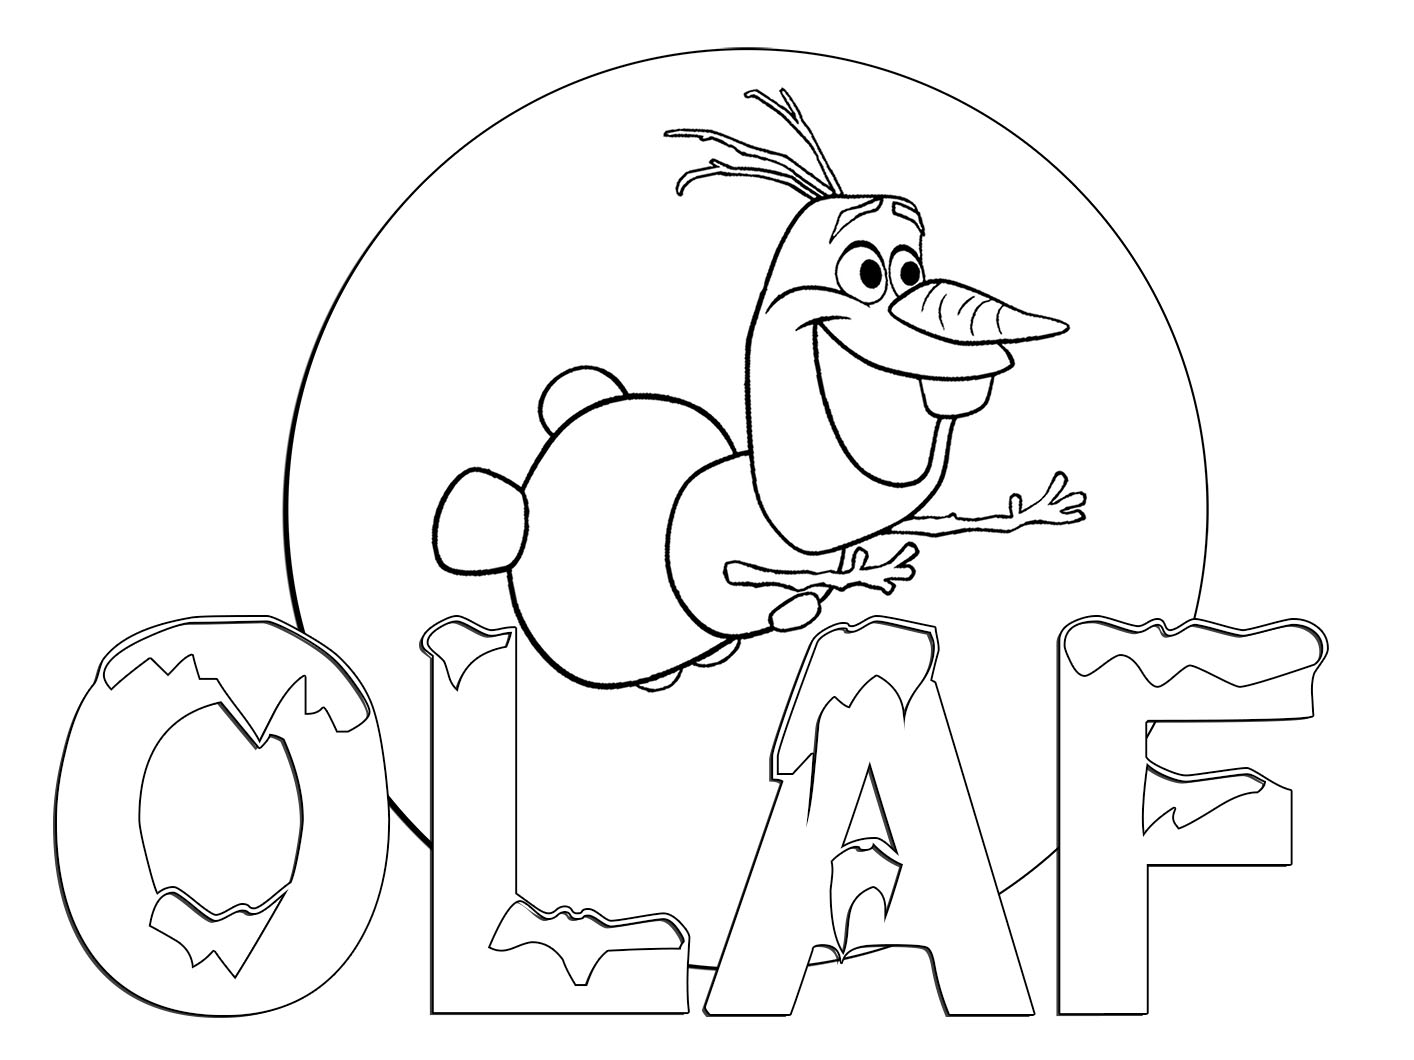 Olaf Coloring Pages Pdf : Disney frozen olaf coloring pages only